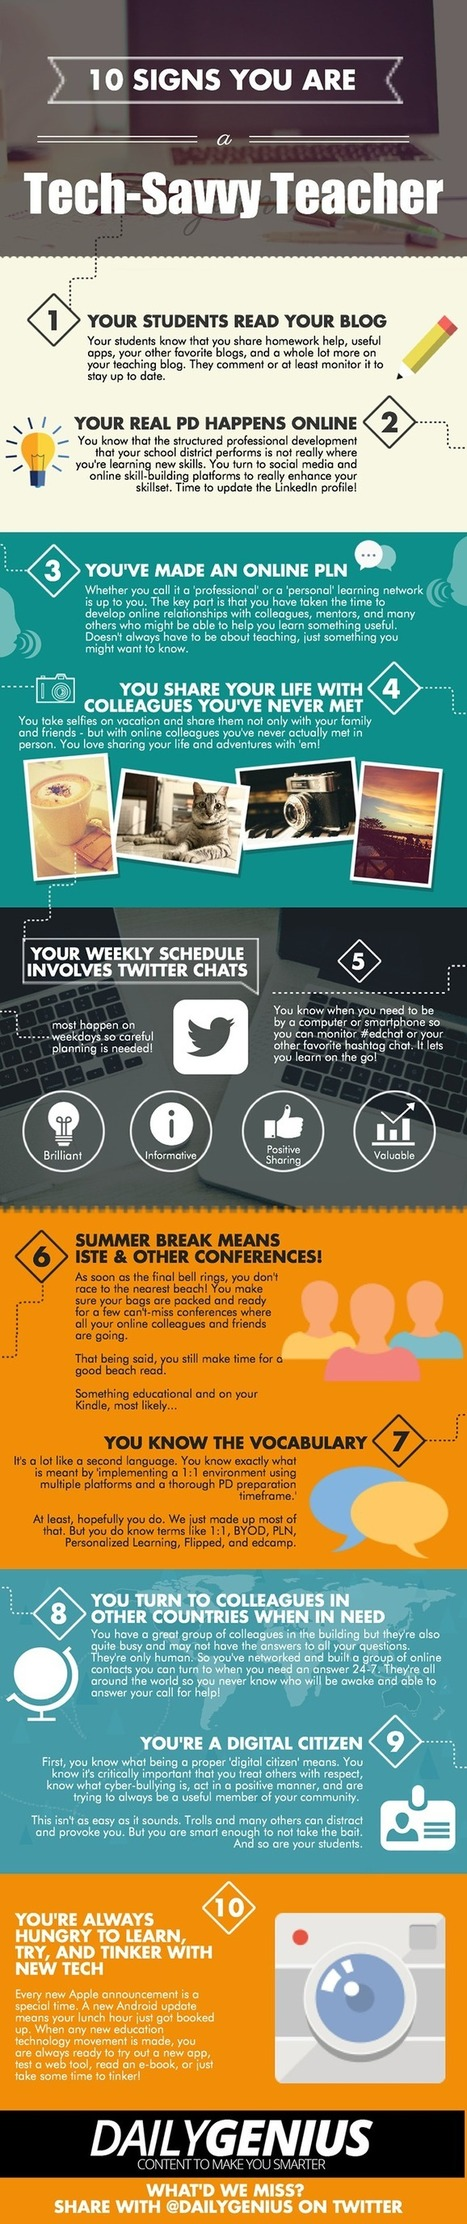 Are You A Tech-Savvy Teacher, This Infographic Will Tell You | TechFaster | DigitalLiteracies | Scoop.it